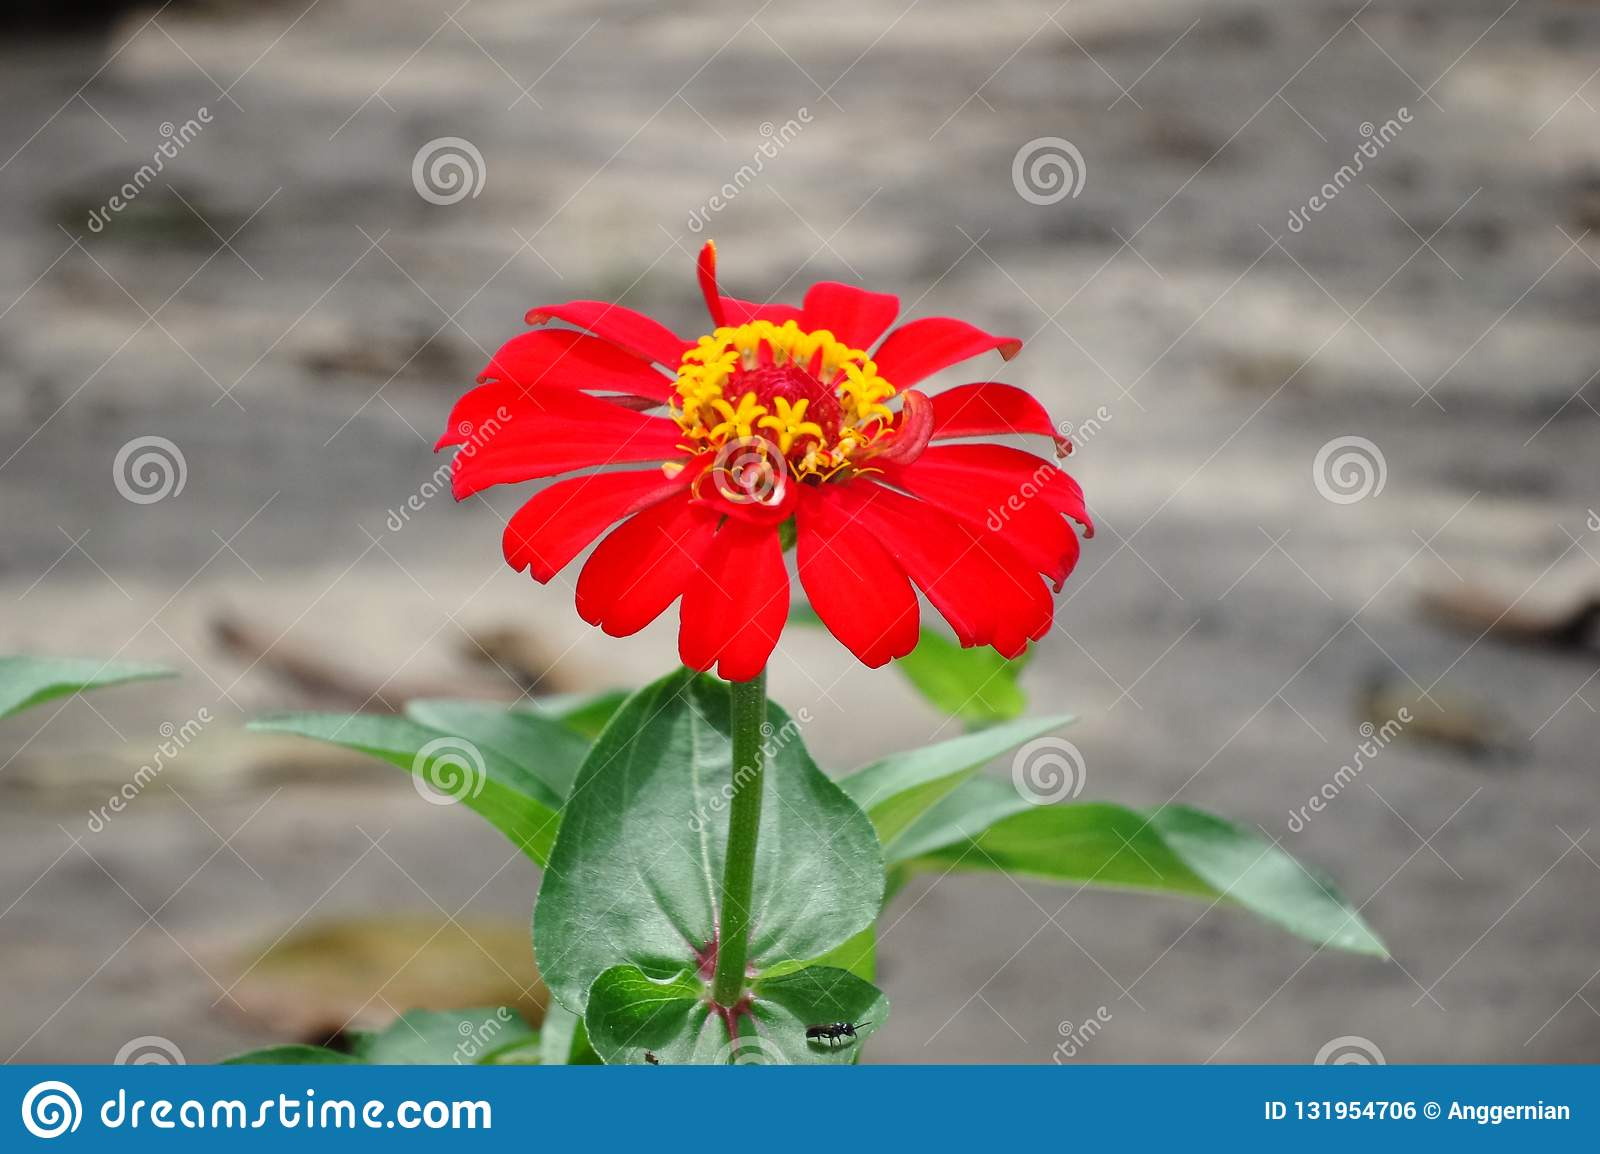 Red Flower On The Green Leaves Hd Wallpaper Background Stock Photo